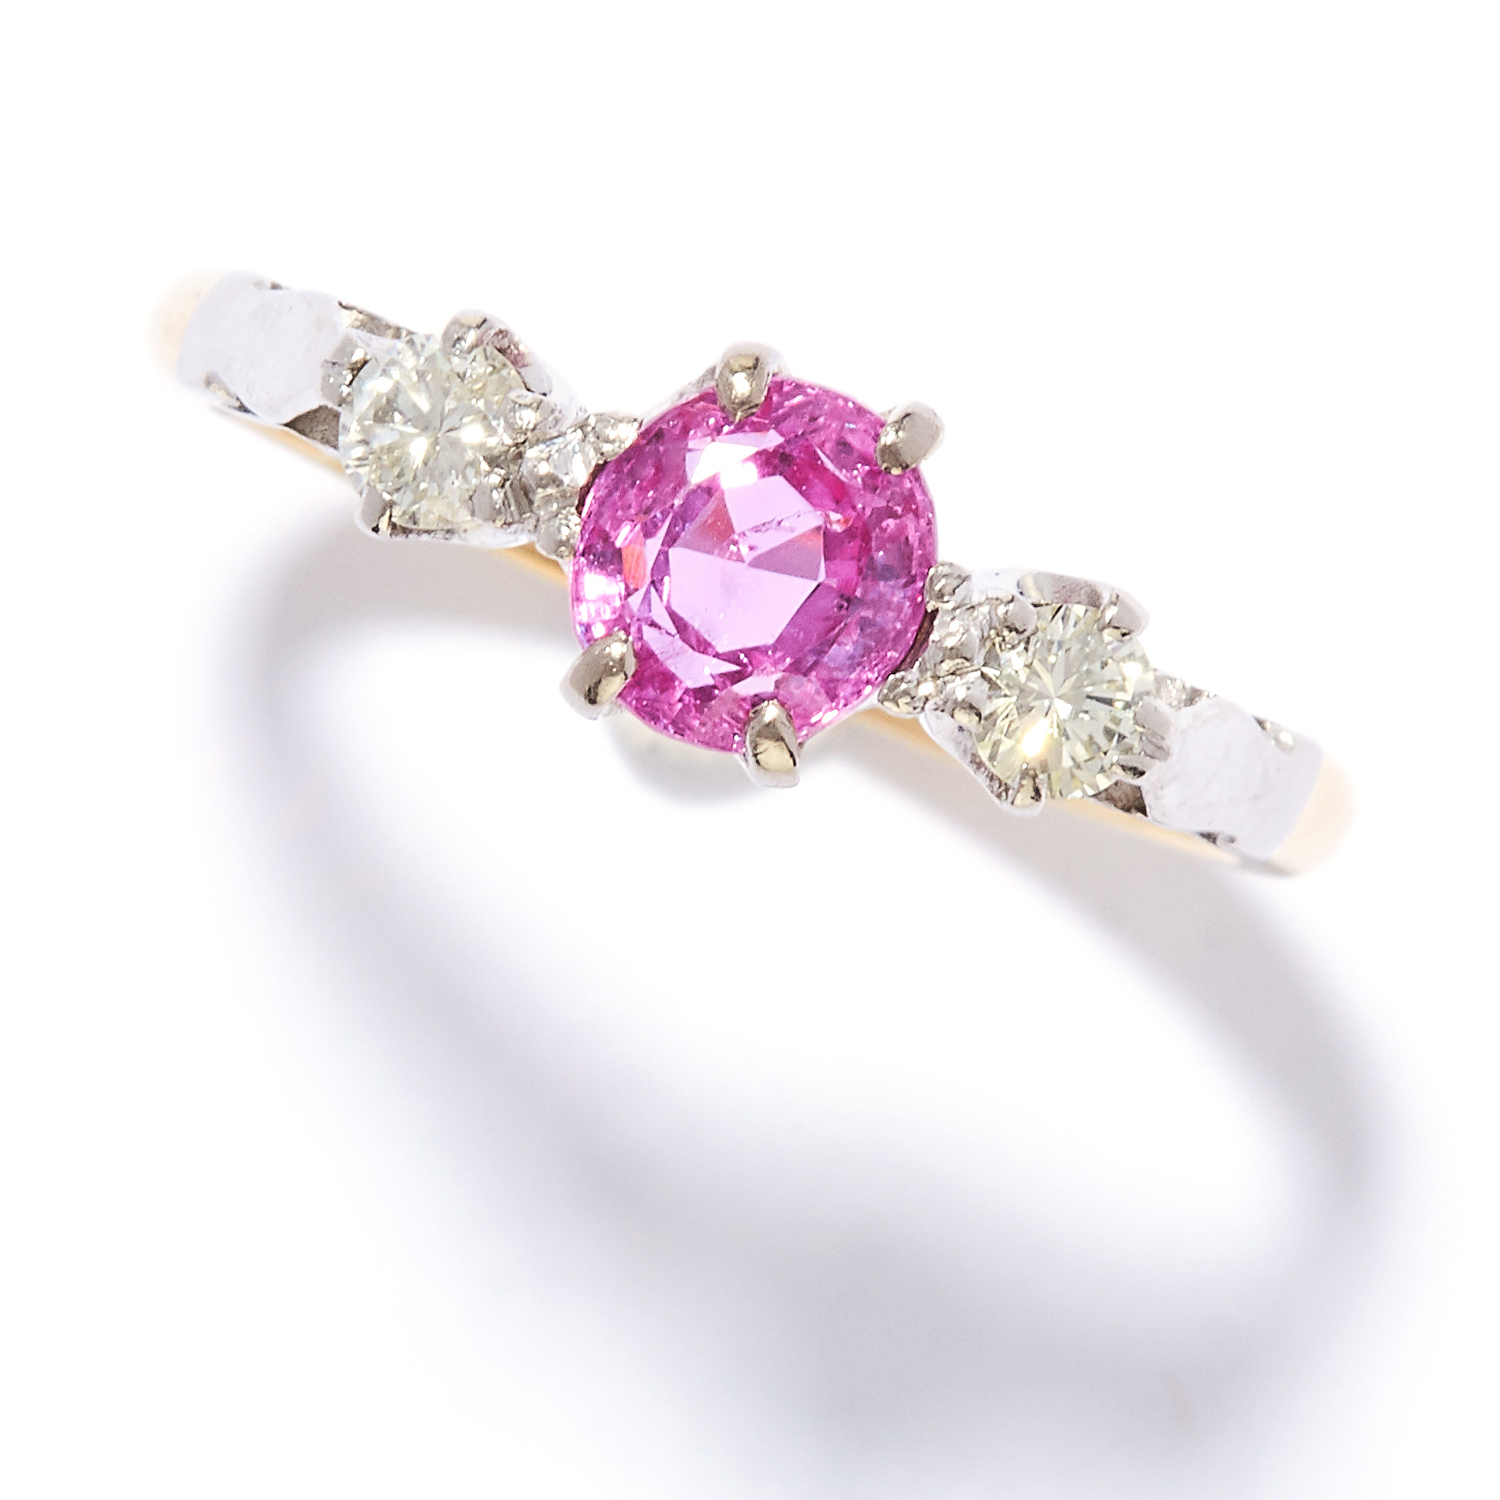 Los 48 - PINK SAPPHIRE AND DIAMOND THREE STONE RING in 18ct yellow gold, set with a round cut pink sapphire